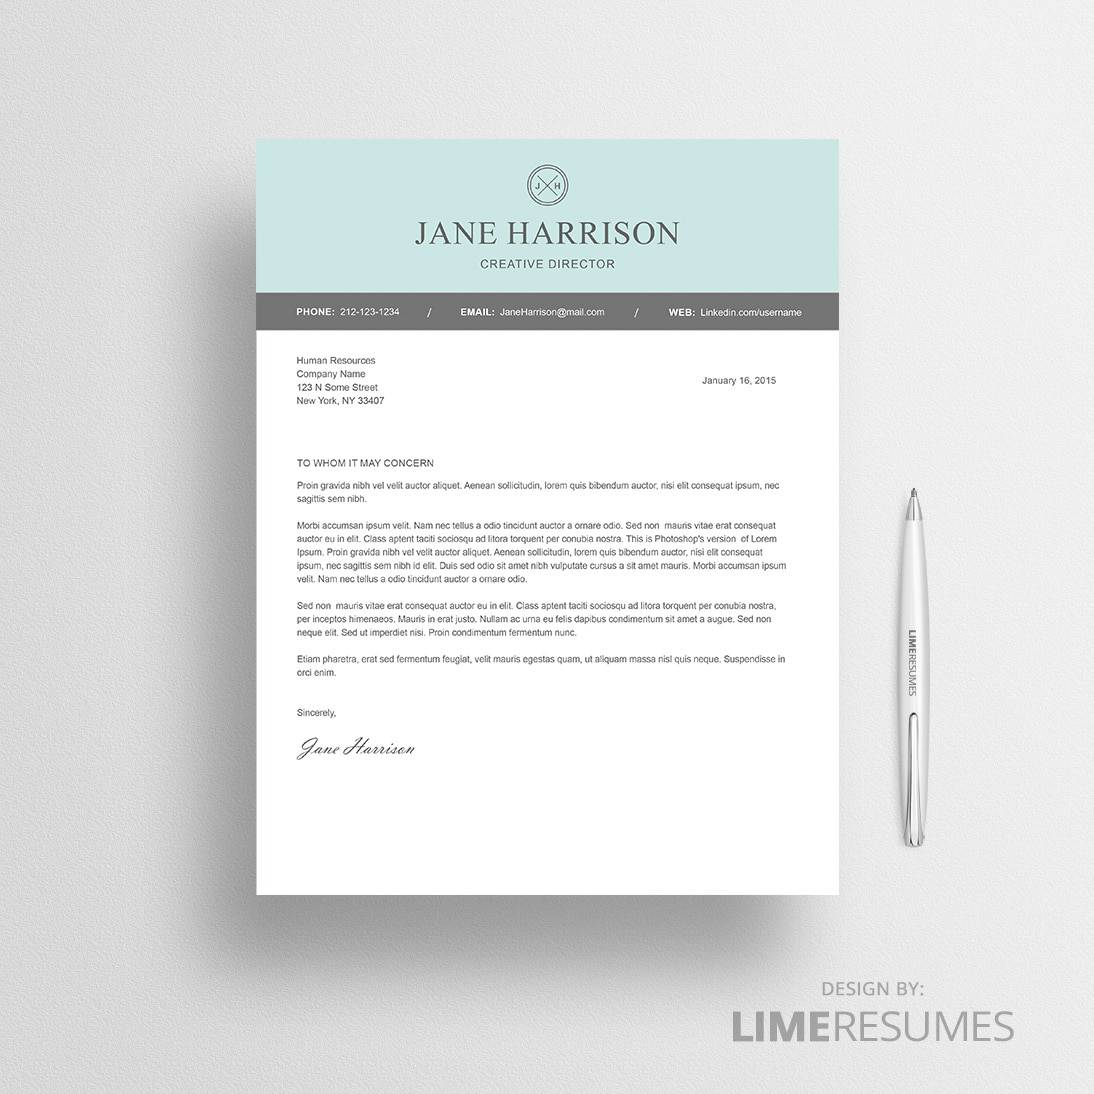 Microsoft Word Templates For Resumes Resume Template 18